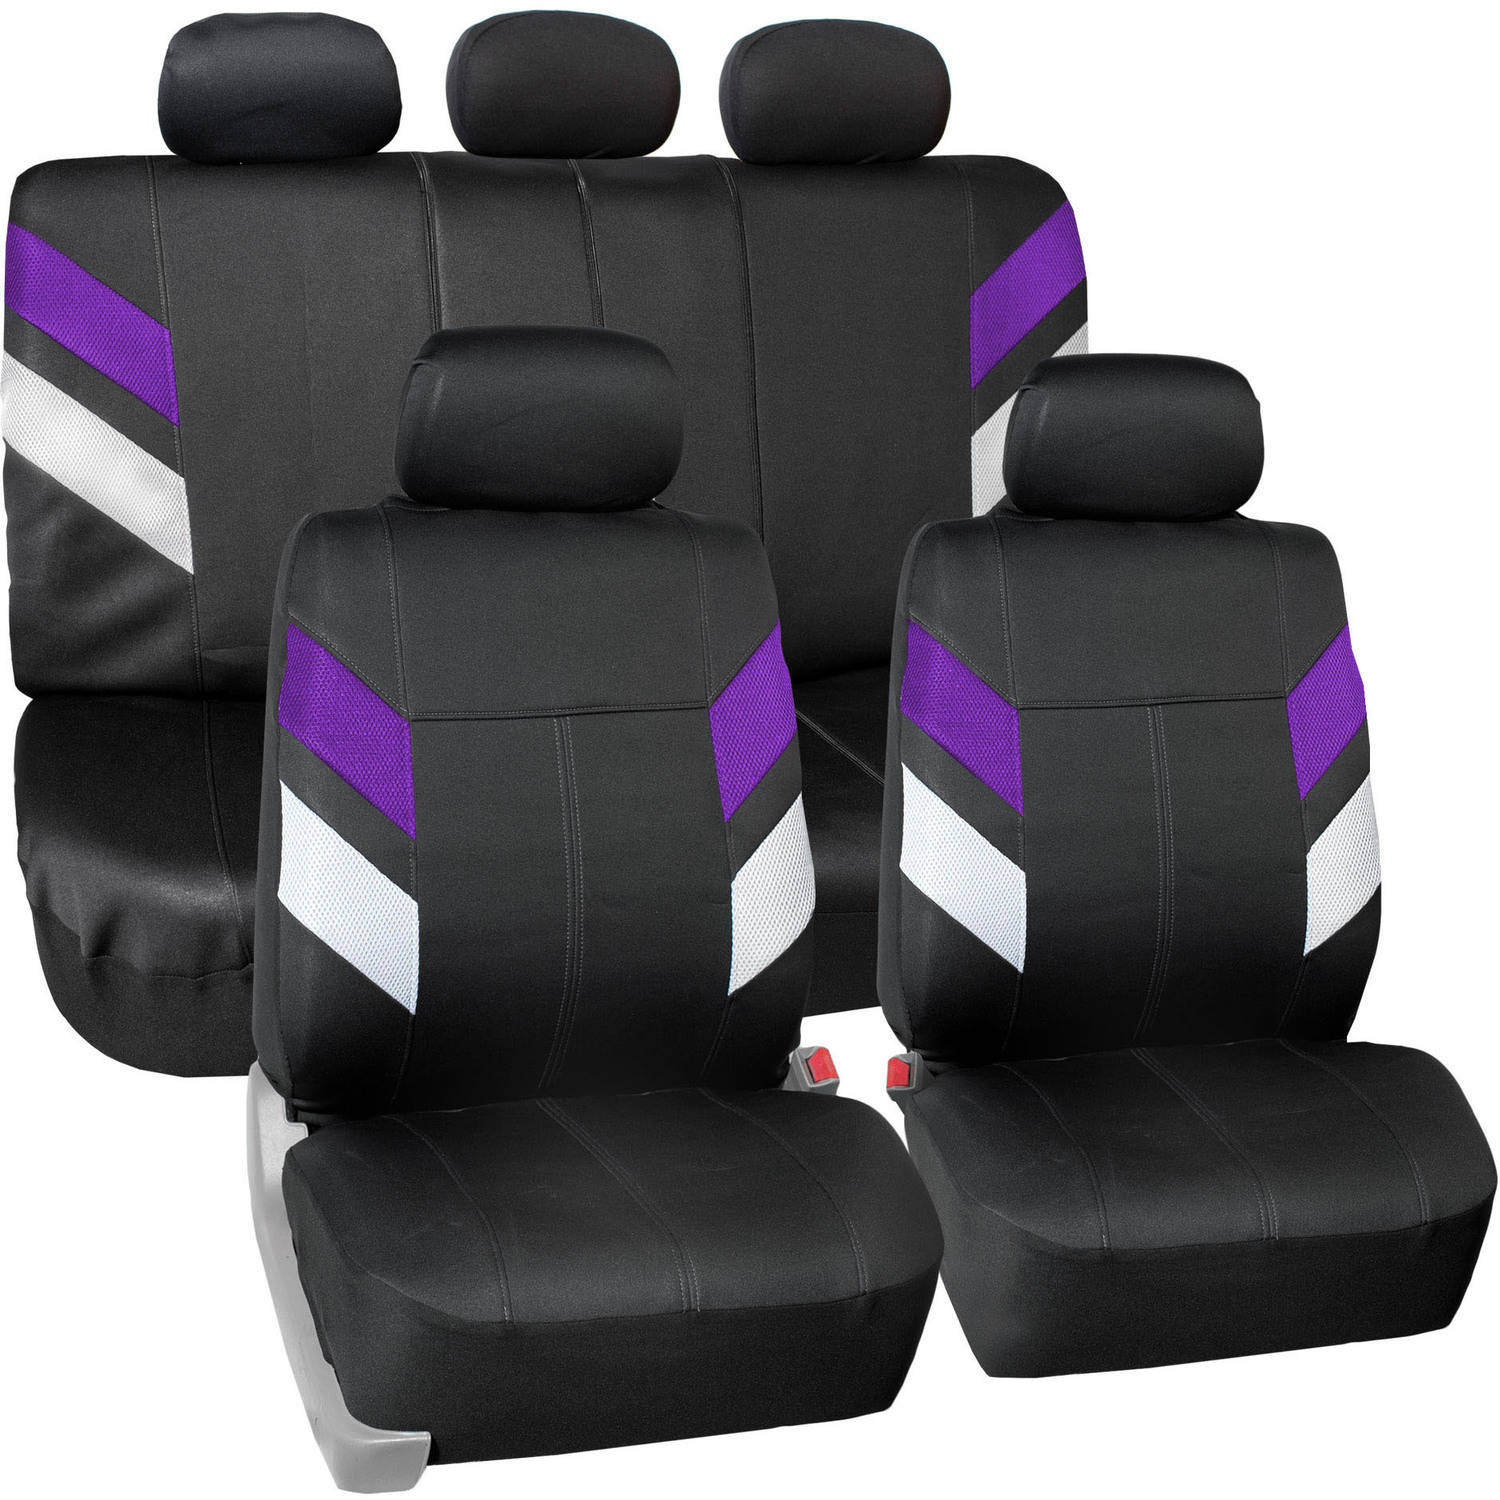 FH Group Modern Edge Waterproof Durable Neoprene Full Set Seat Covers, Purple